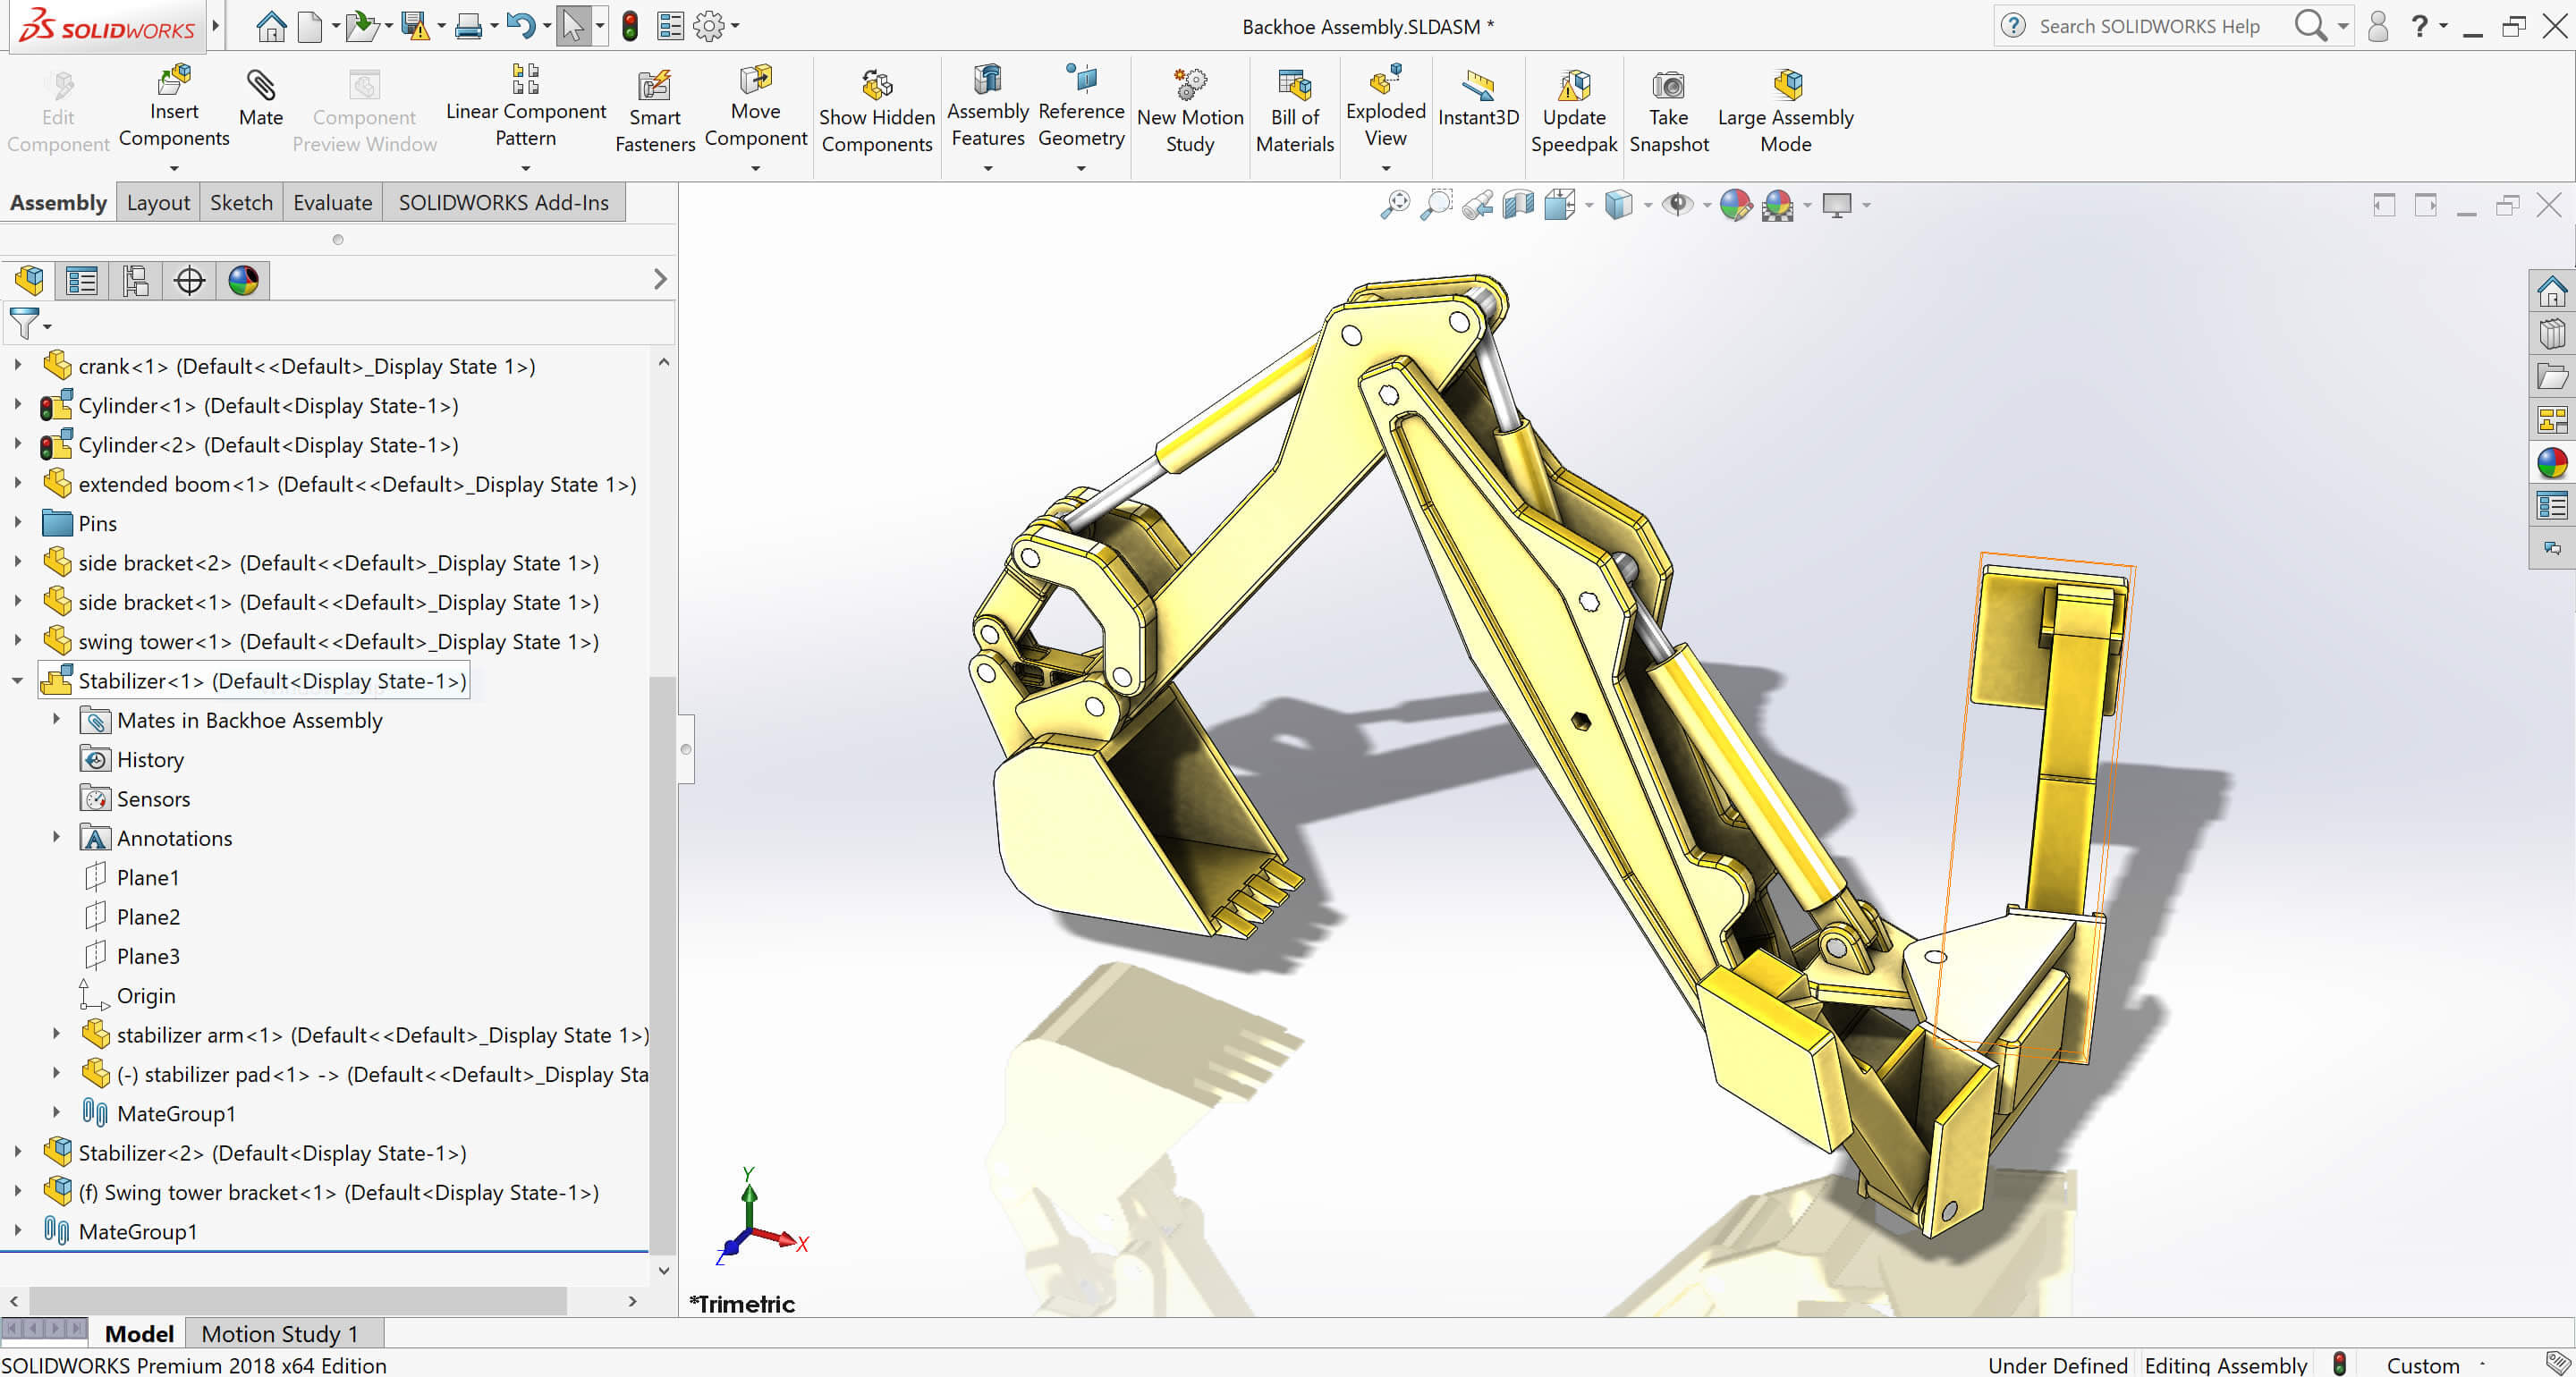 How to mate a moving component of a SOLIDWORKS Rigid Sub-assembly